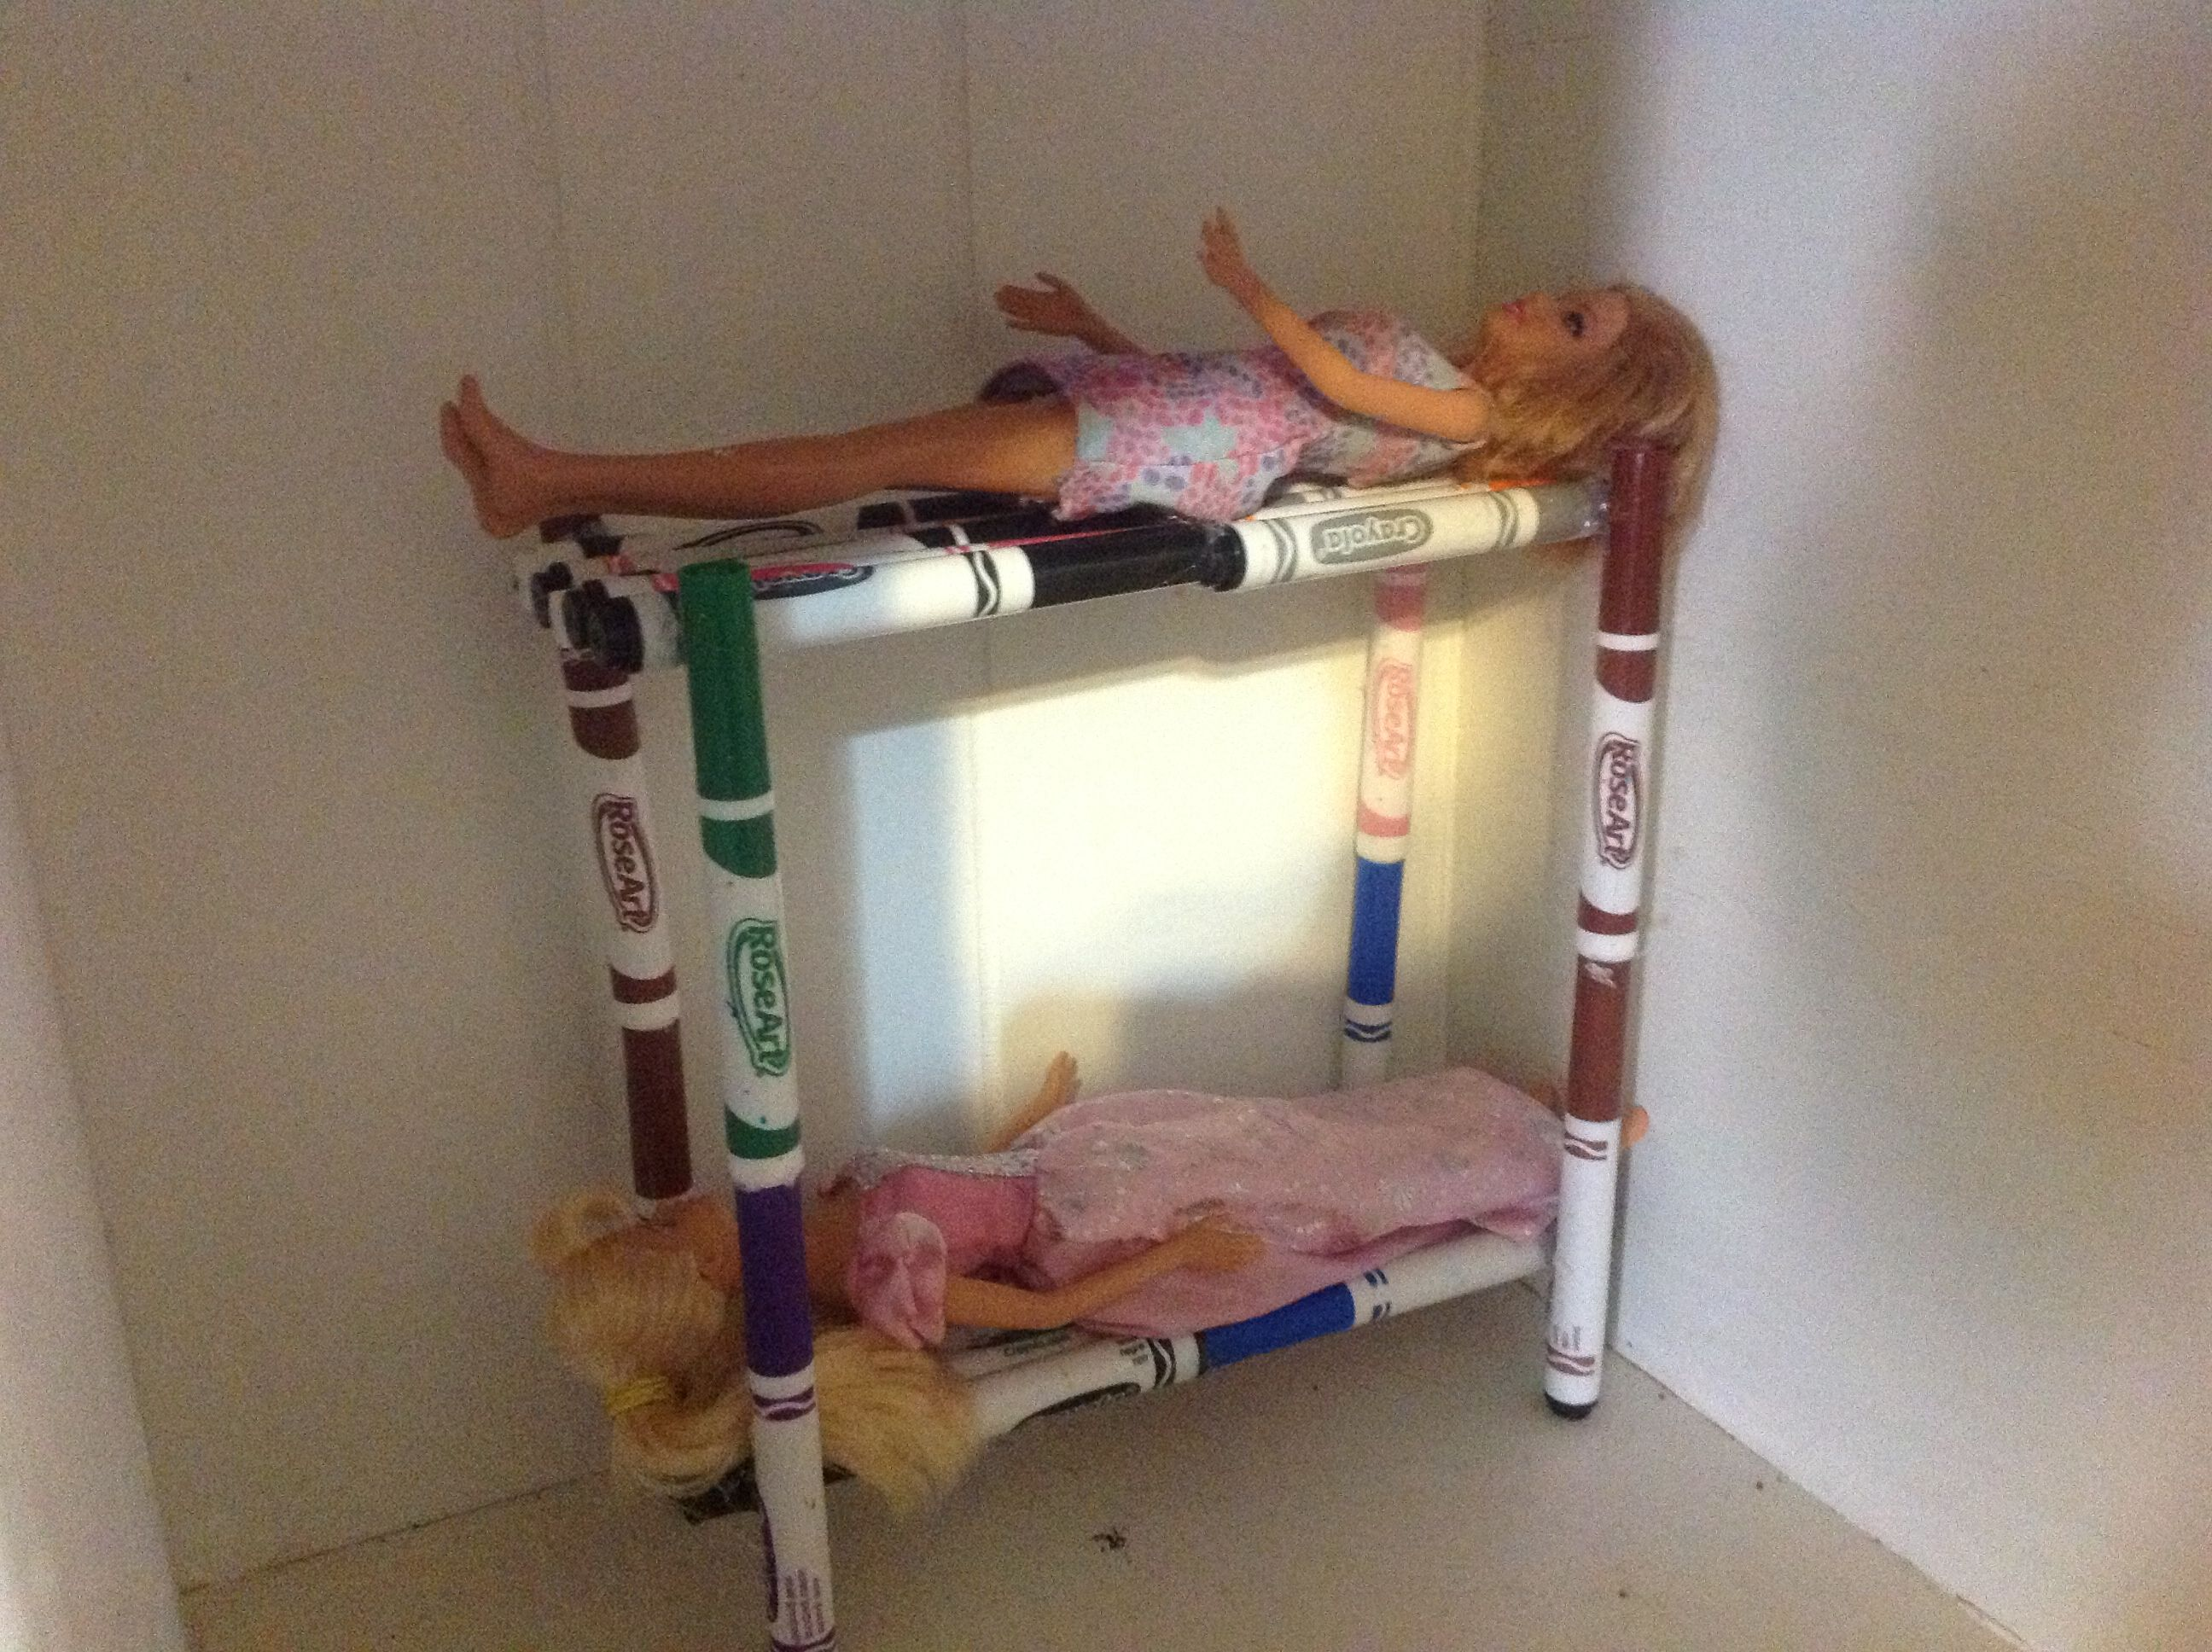 diy barbie doll furniture. DIY Barbie Bunkbed With Markers And Hot Glue. So, So Easy To Make Furniture Diy Doll